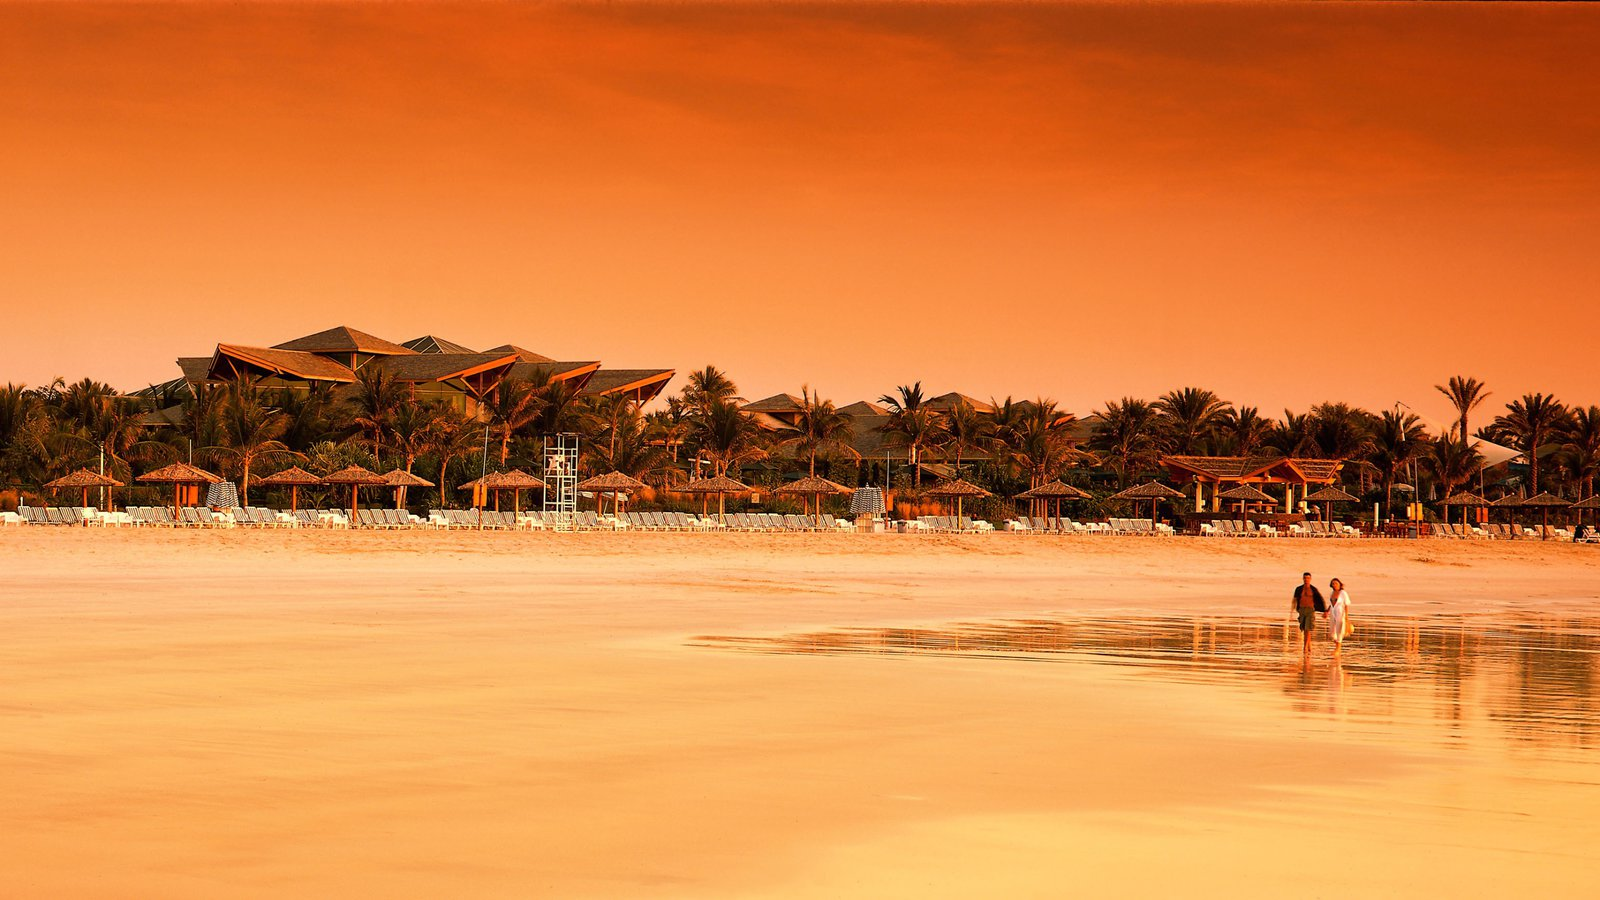 Jumeira Beach and Park showing a luxury hotel or resort, a coastal town and a sunset